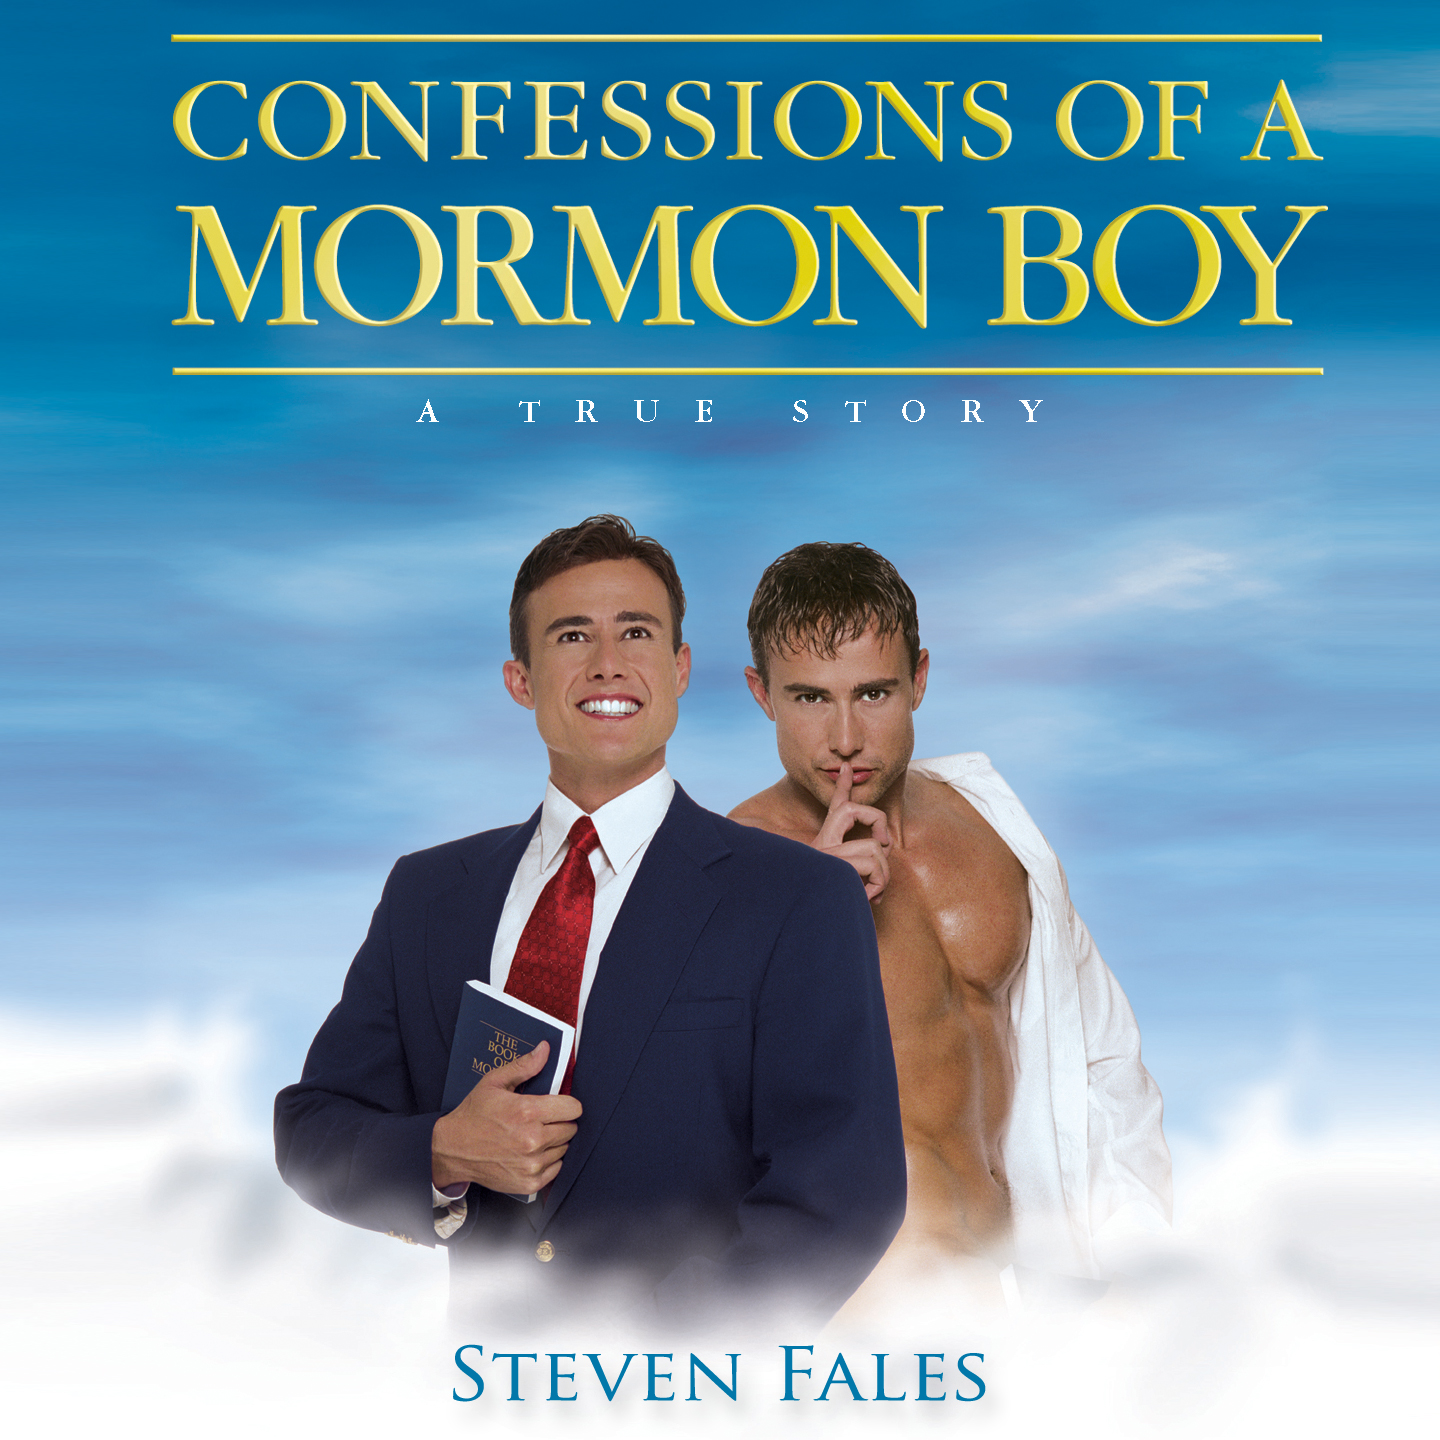 BWW Review: Inspiring CONFESSIONS OF A MORMON BOY (LIVE FROM LONDON) is Moving and Provocative